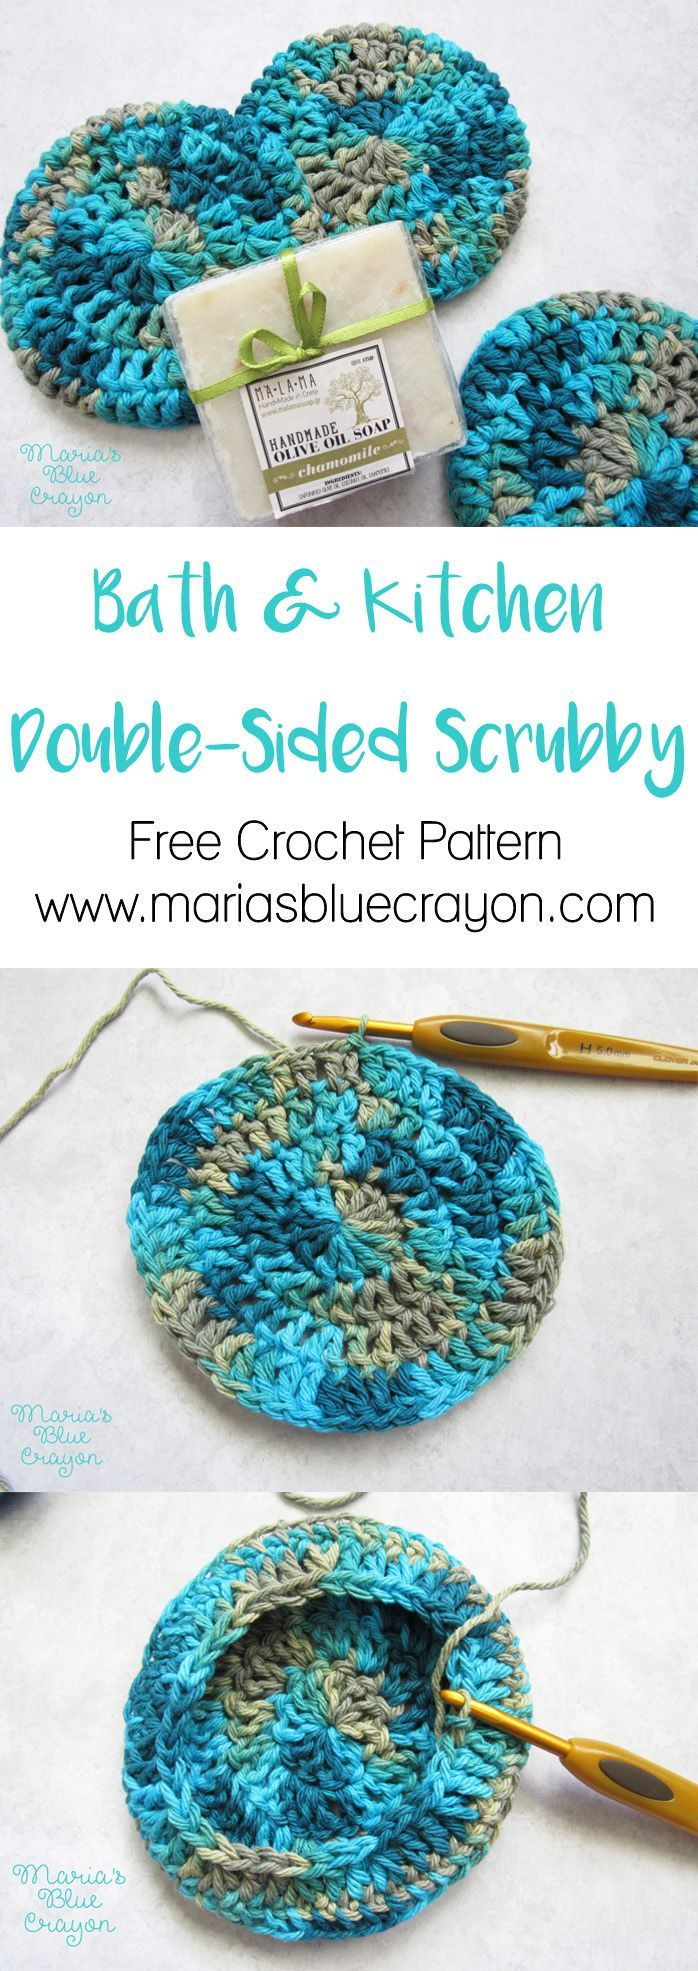 Double Sided, Extra Thick Scrubby for Bath & Kitchen | Patrón de ...